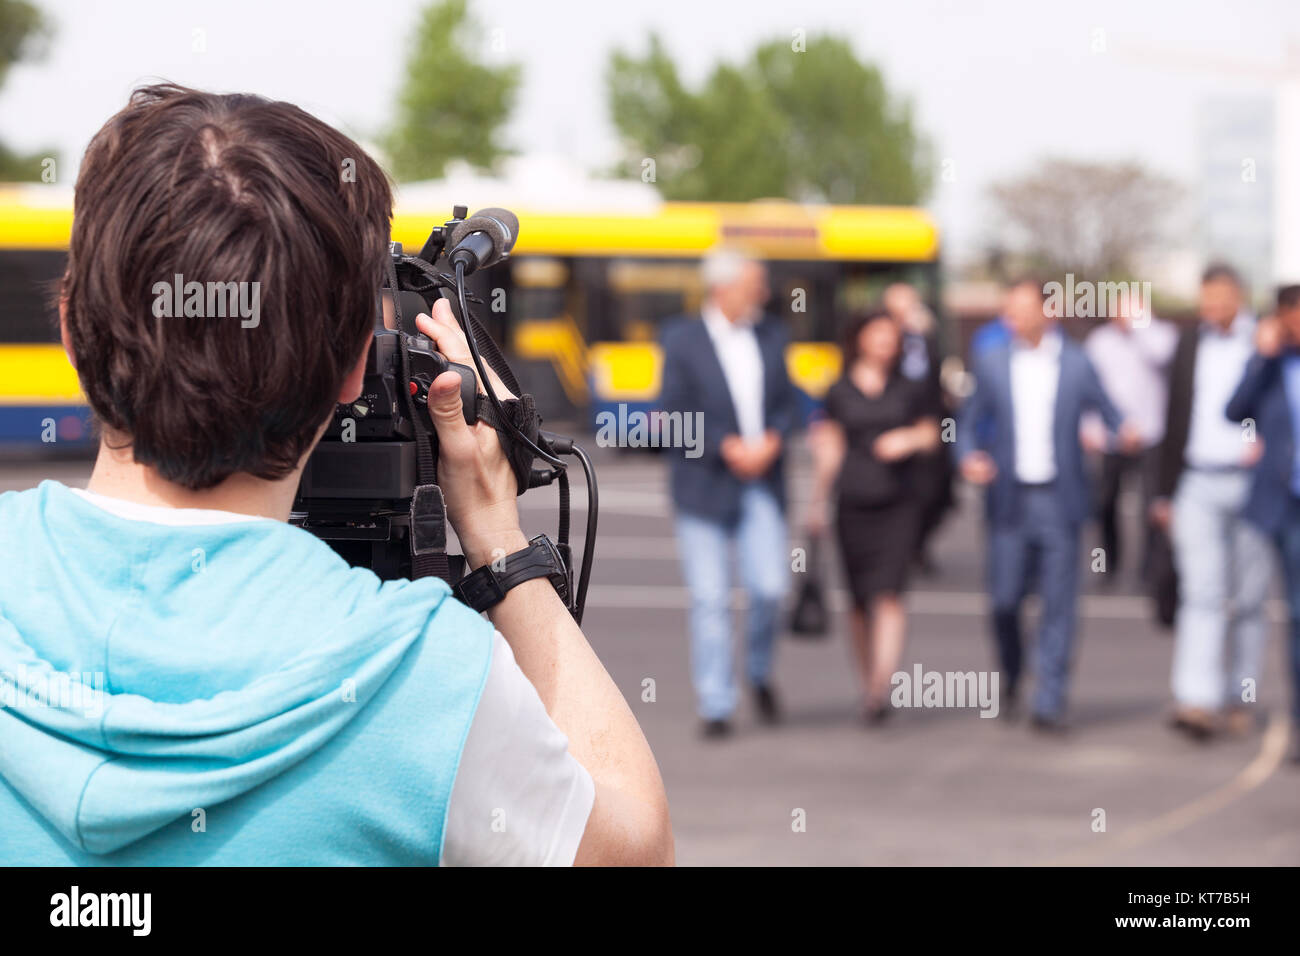 Cameraman filming unrecognizable group of people - Stock Image